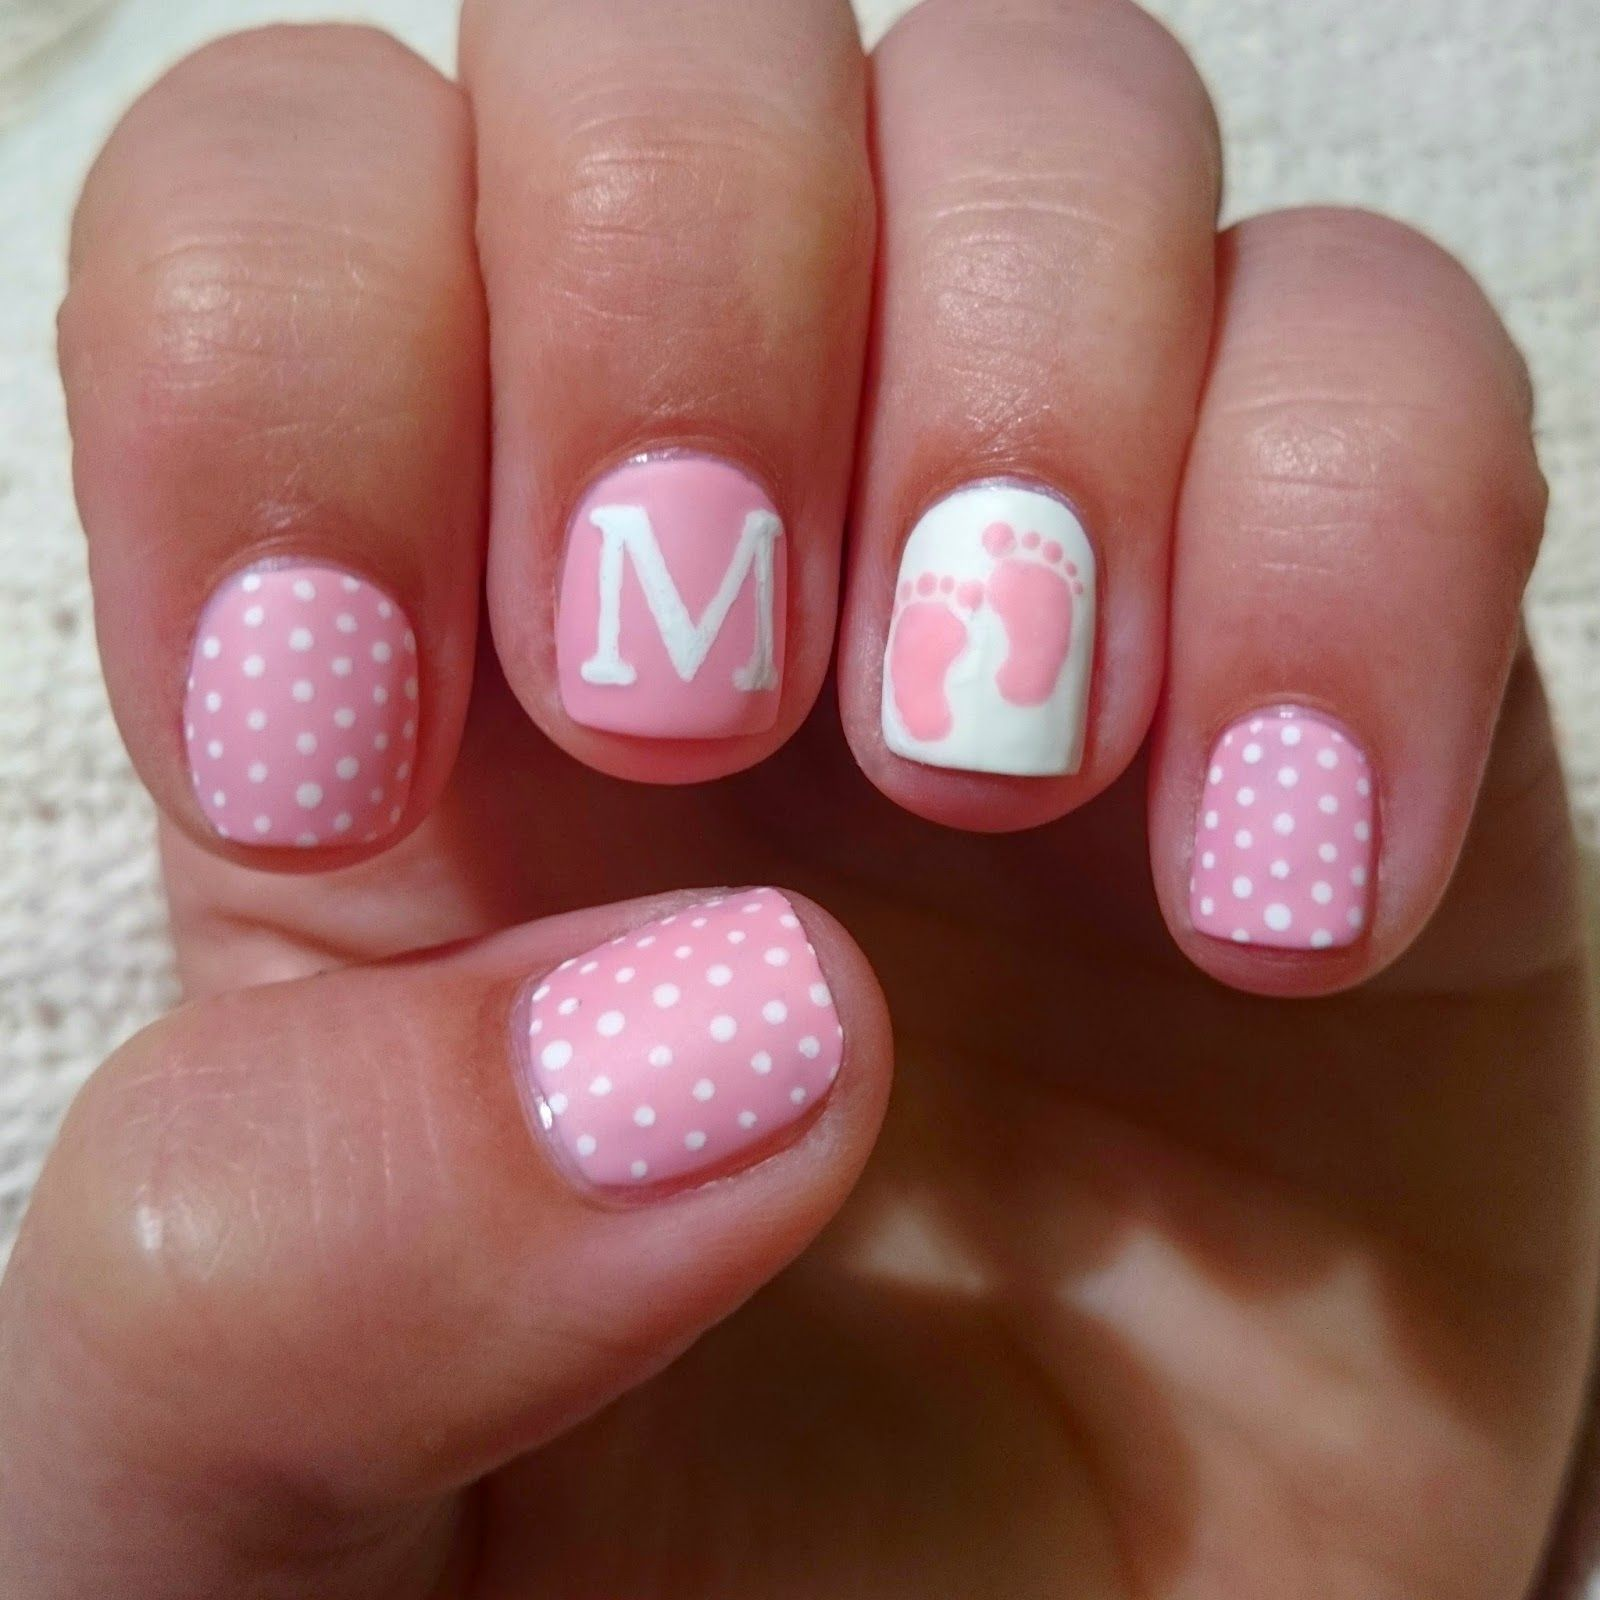 baby girl nails for baby shower - Little Girl Nail Design Ideas